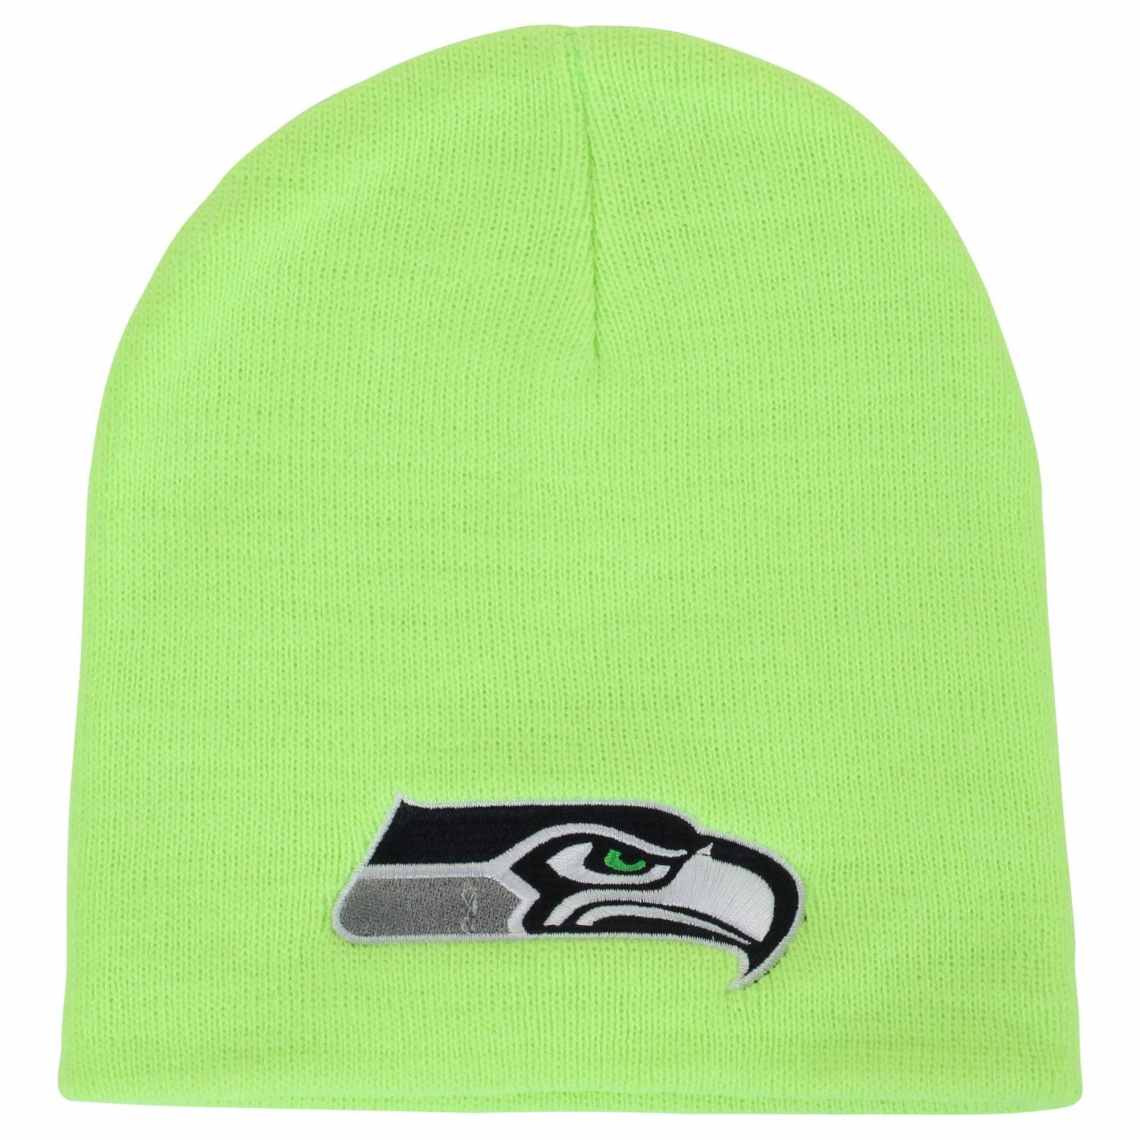 '47 Brand Seattle Seahawks Logo Cuffless Beanie - Neon Green